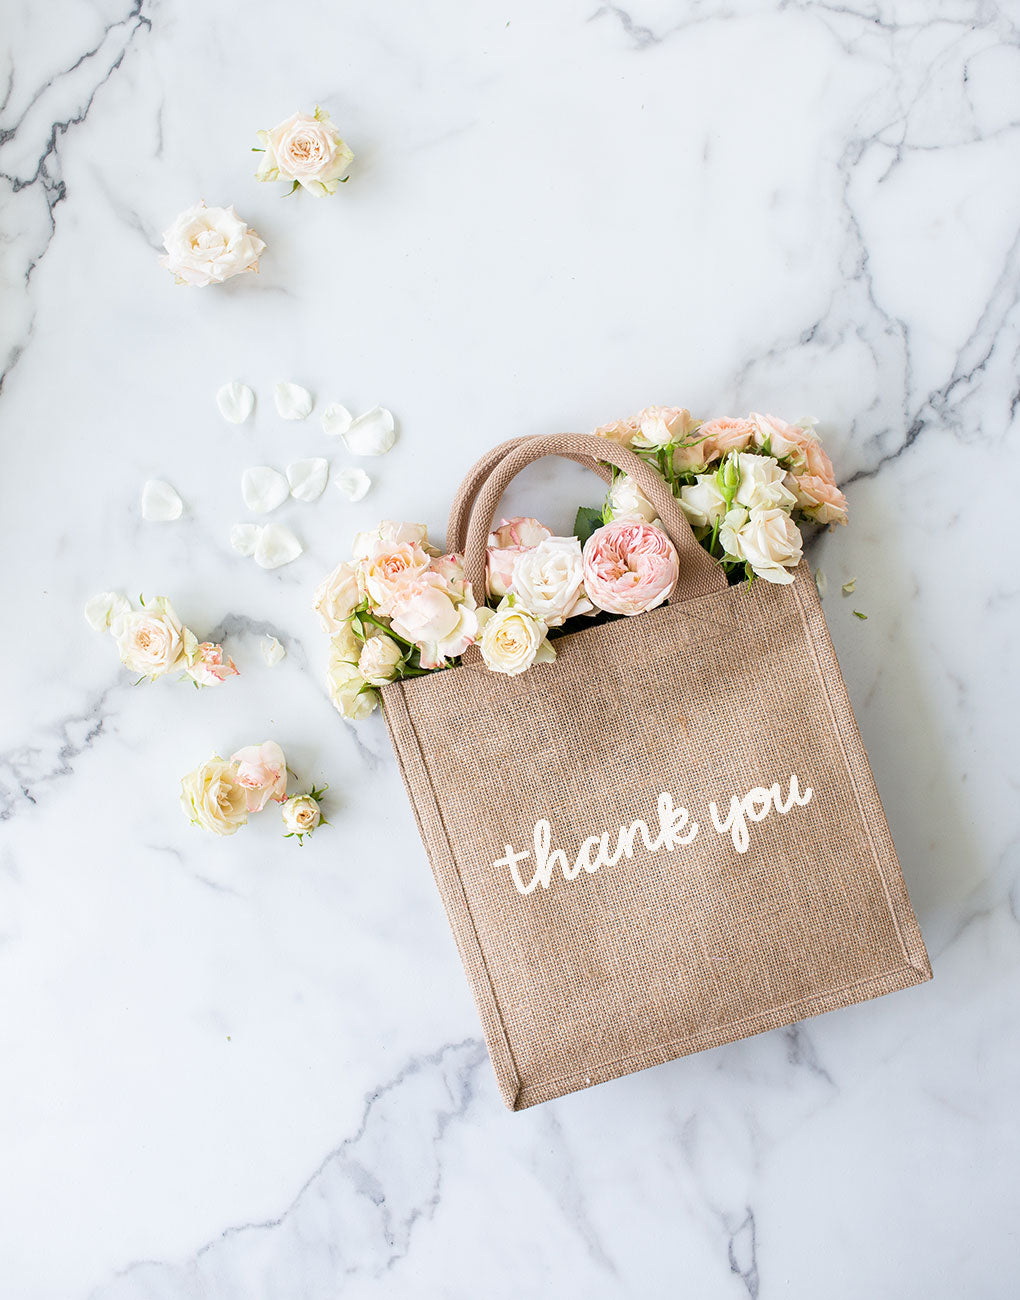 Large Thank You Reusable Gift Tote In White Font | The Little Market